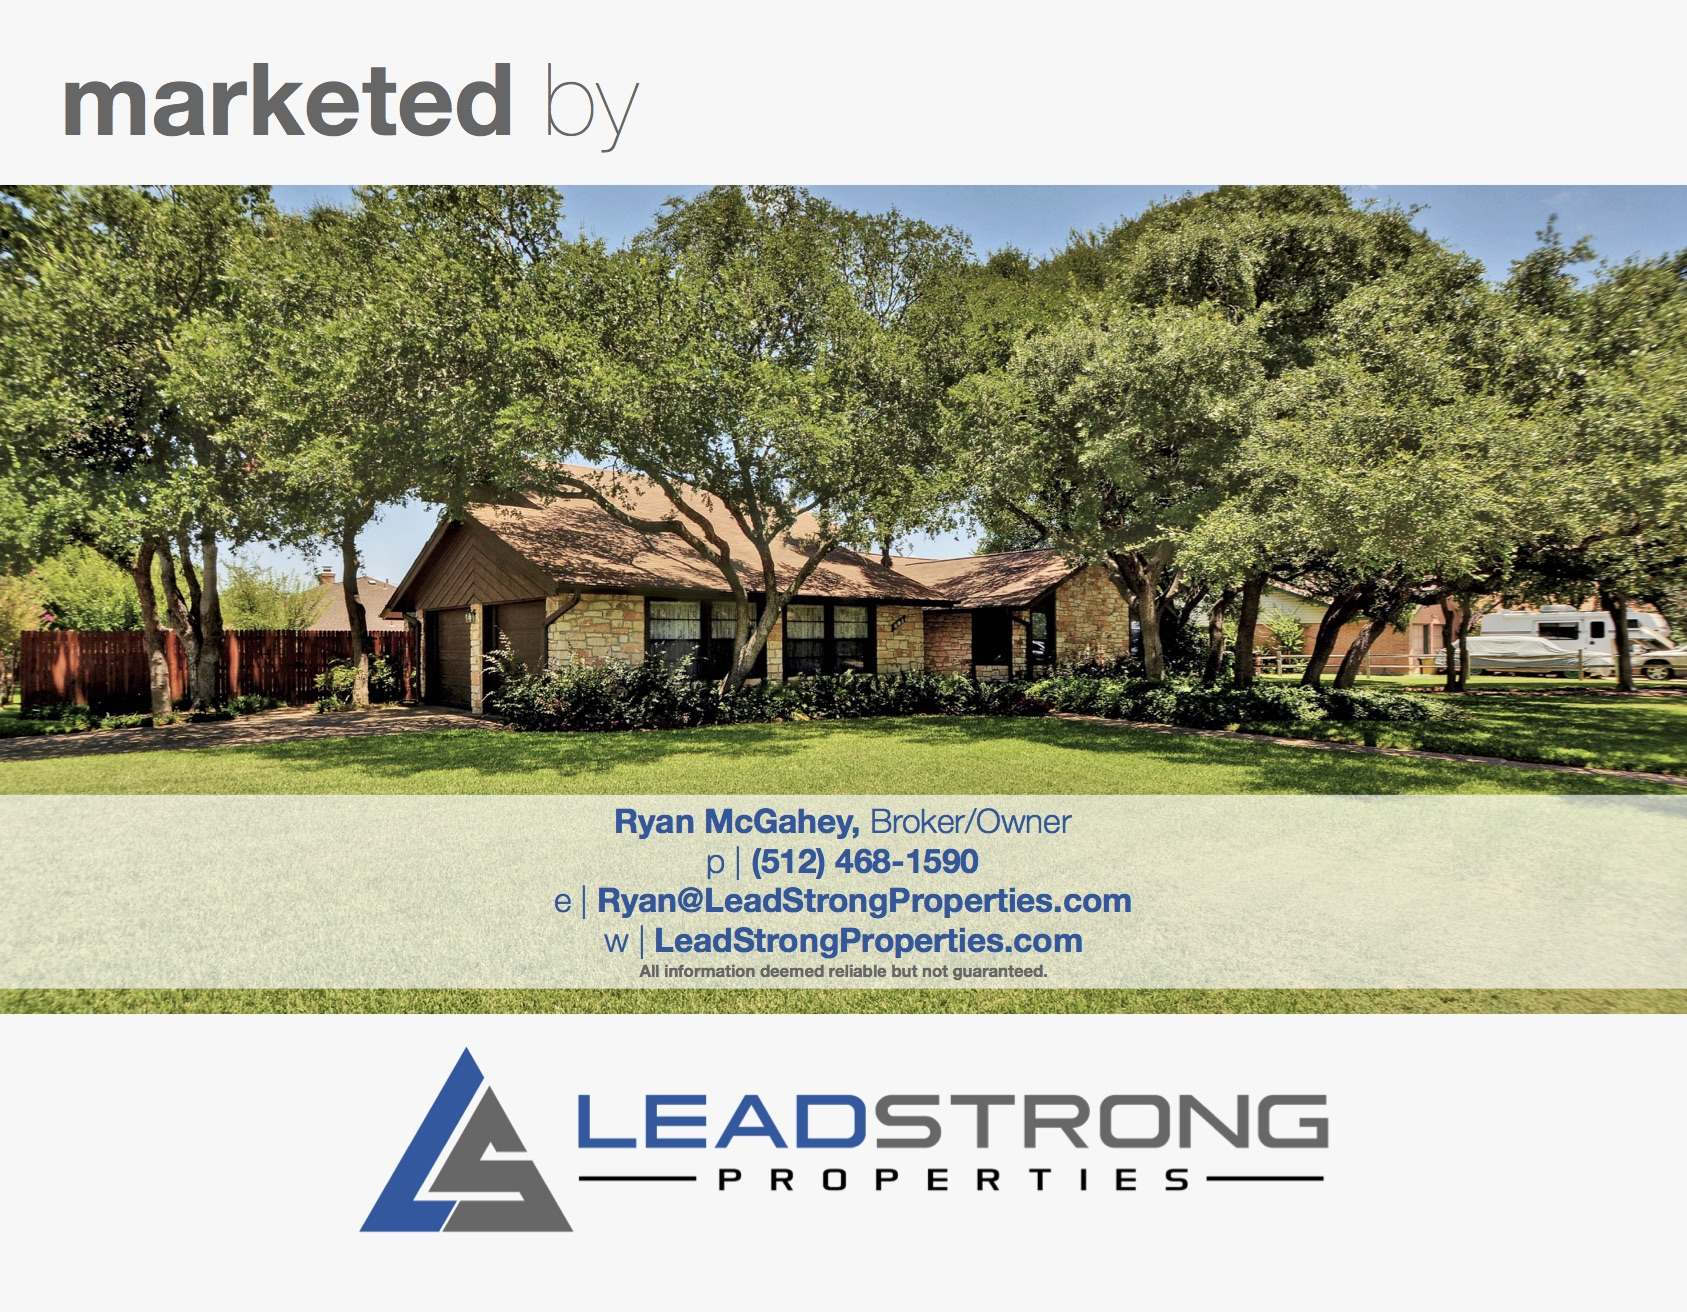 8-page property marketing brochure property brochure real estate realtor agent operations